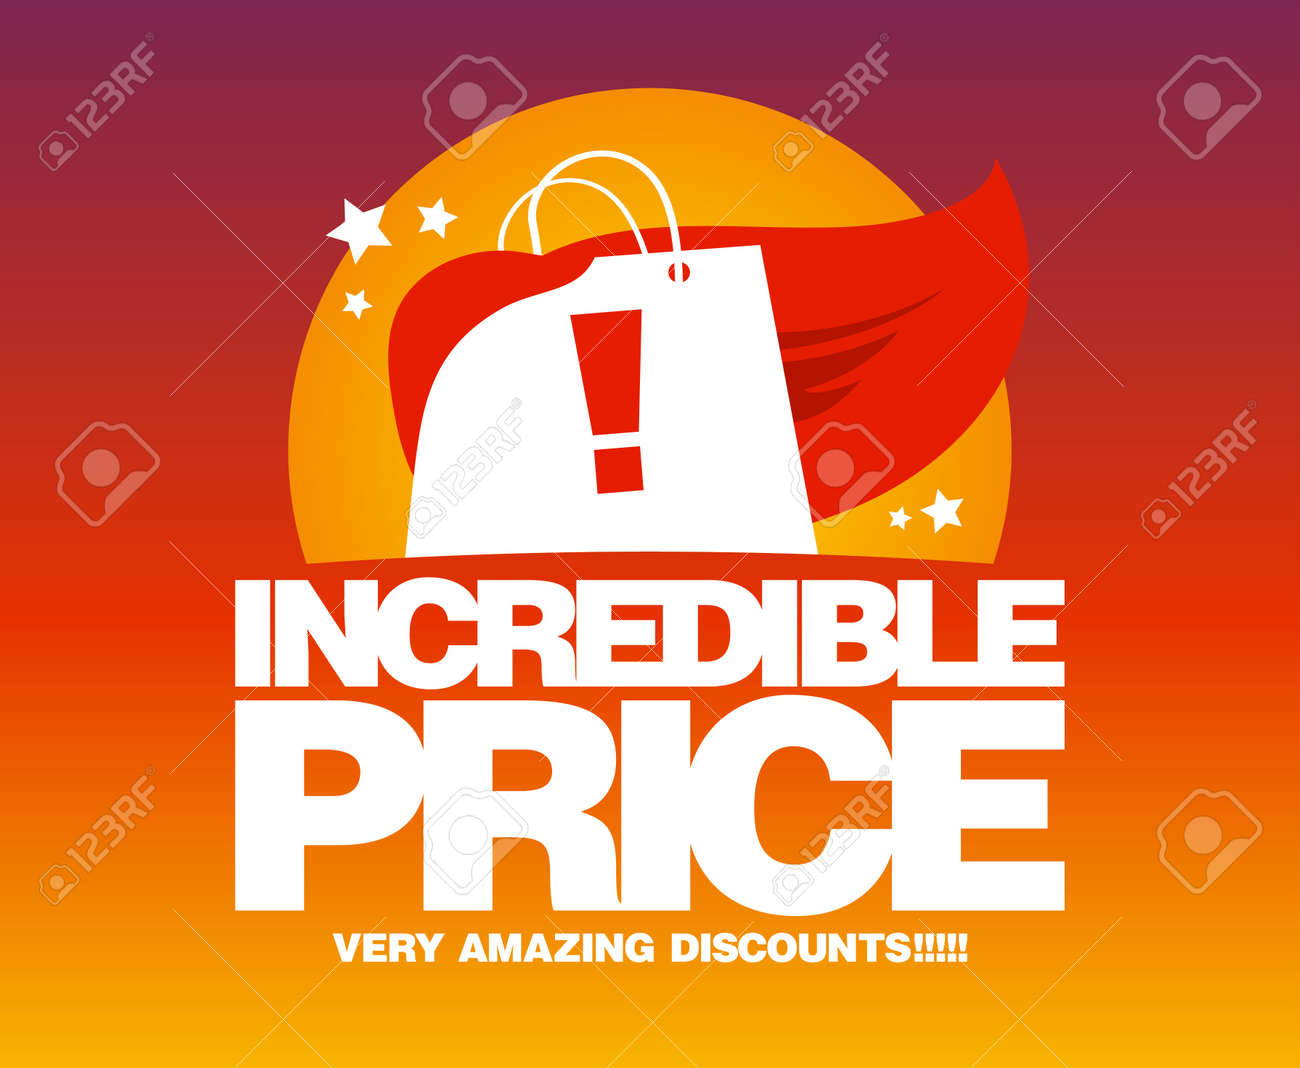 Price for a poster design - Discount Poster Incredible Price Sale Design Template With Shopping Bag As A Superhero Illustration